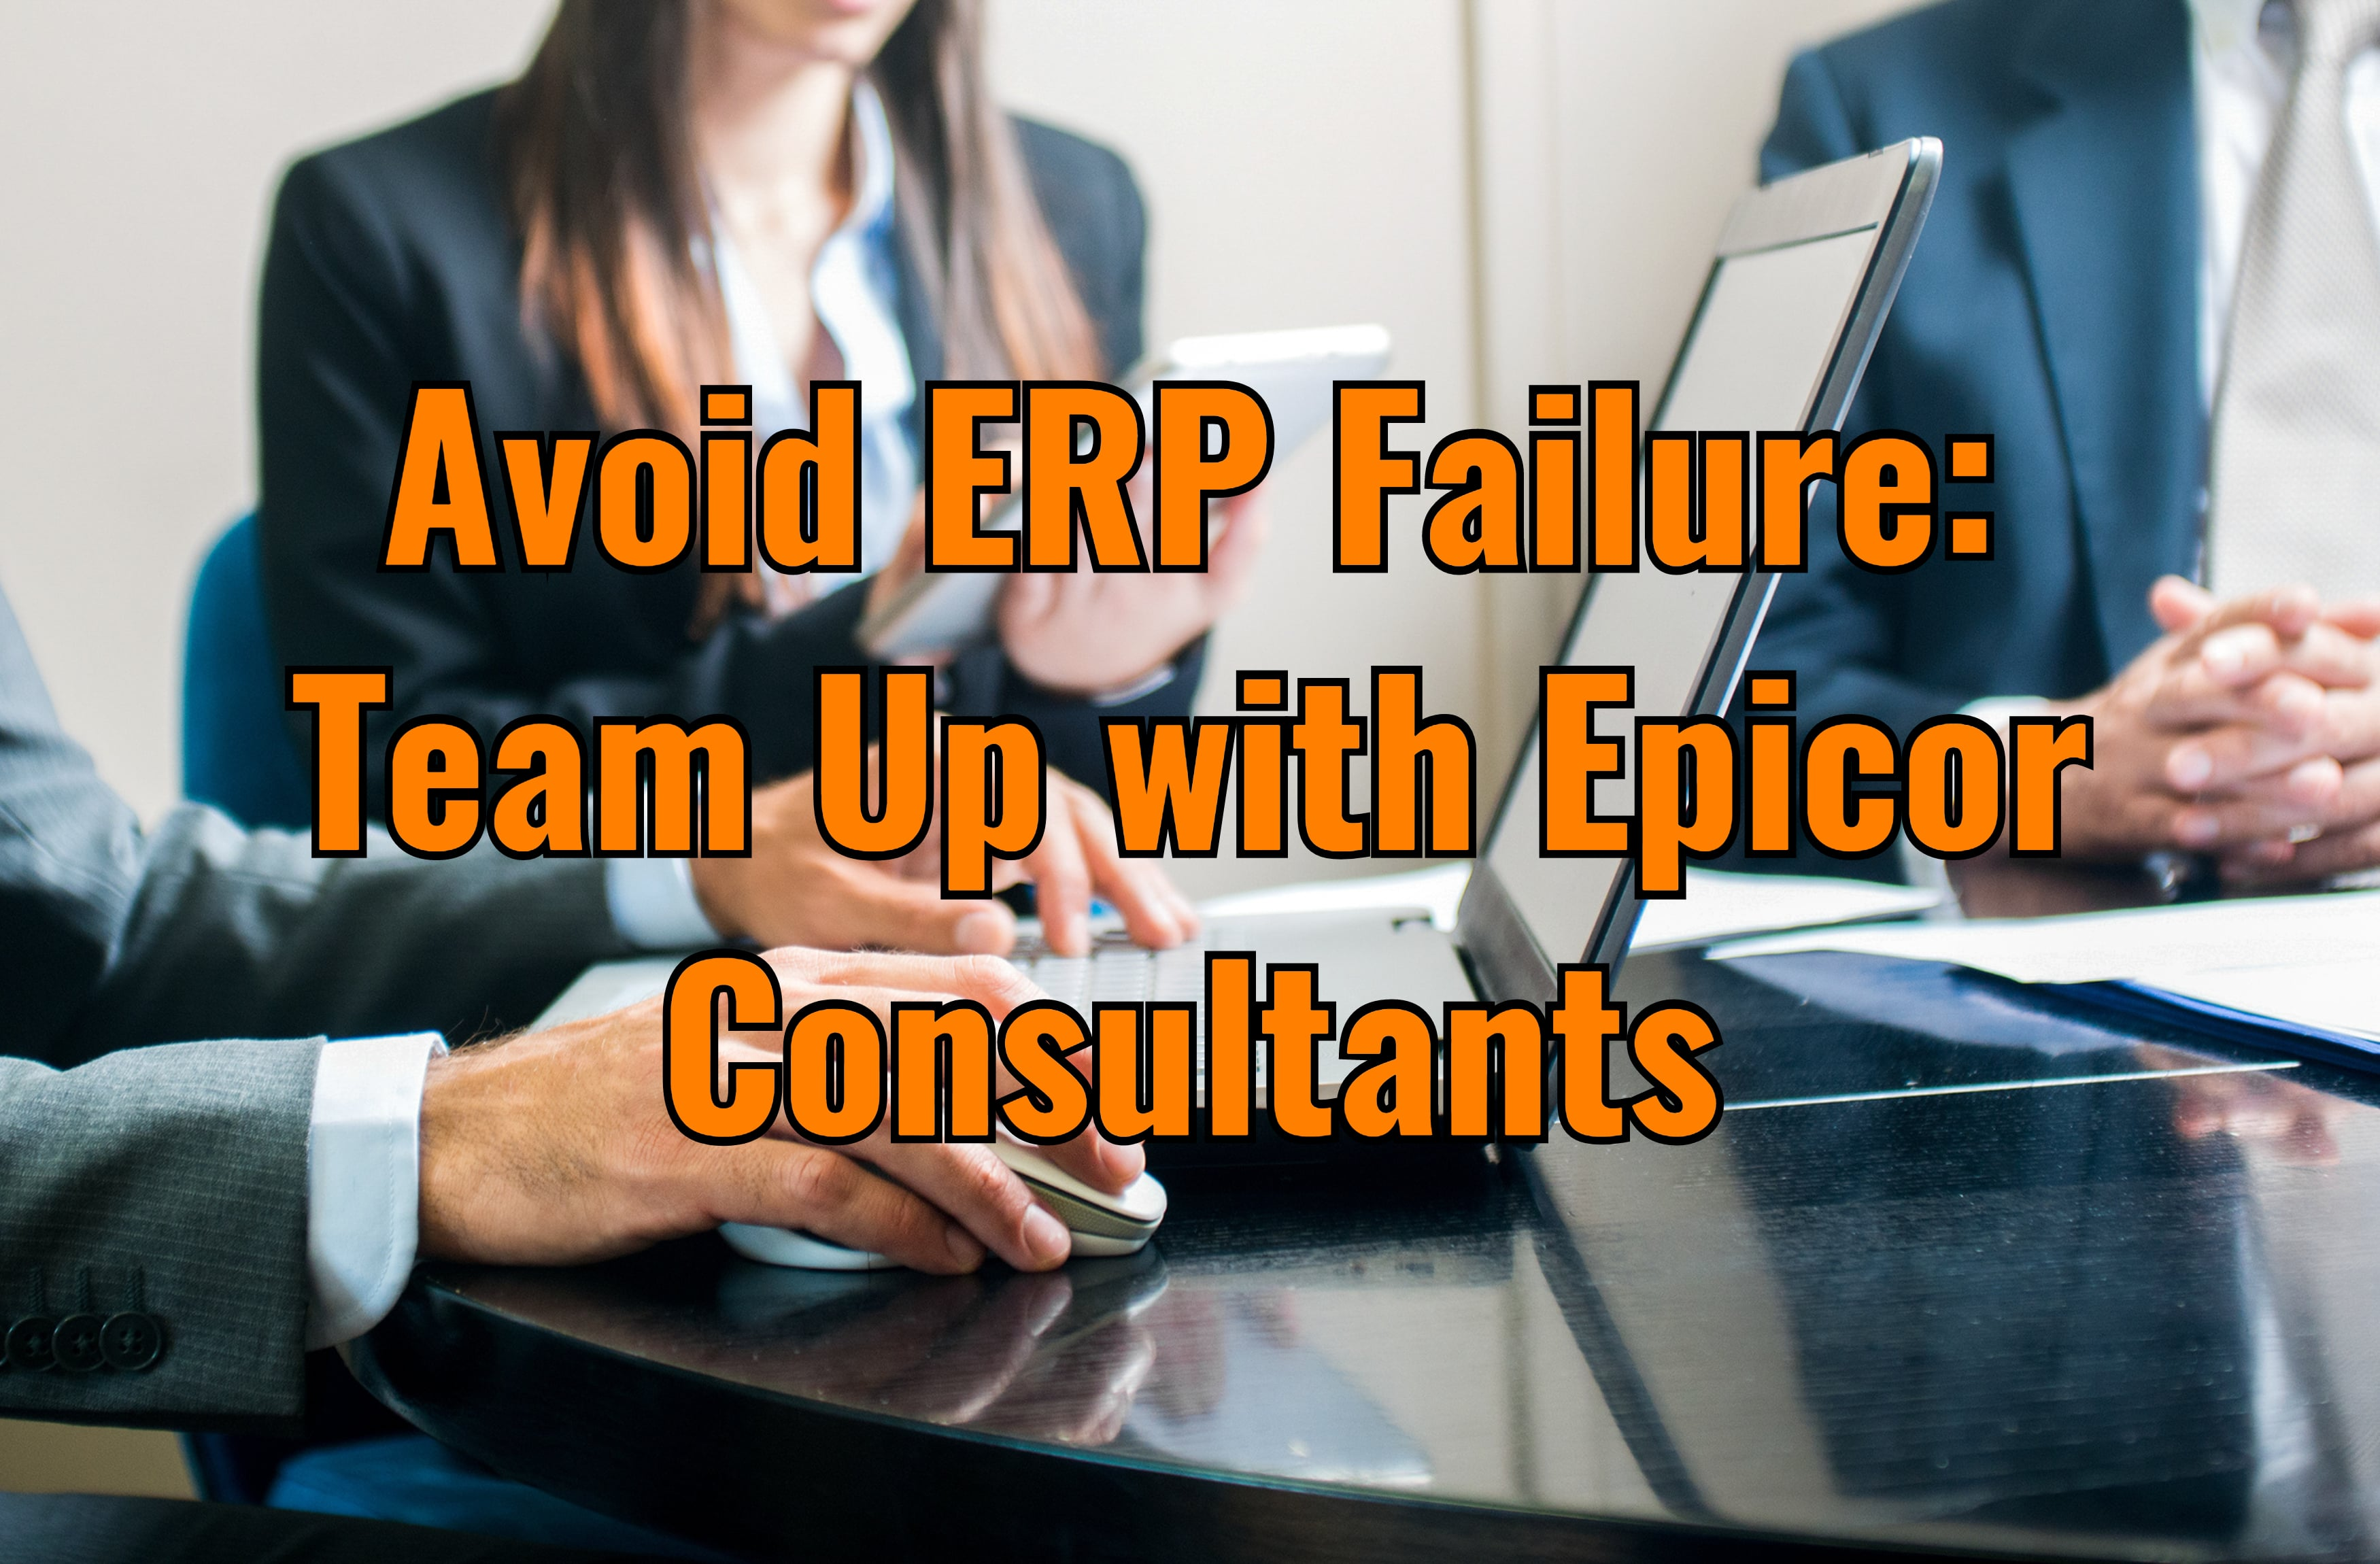 Avoid ERP Failure: Team Up with Epicor Consultants